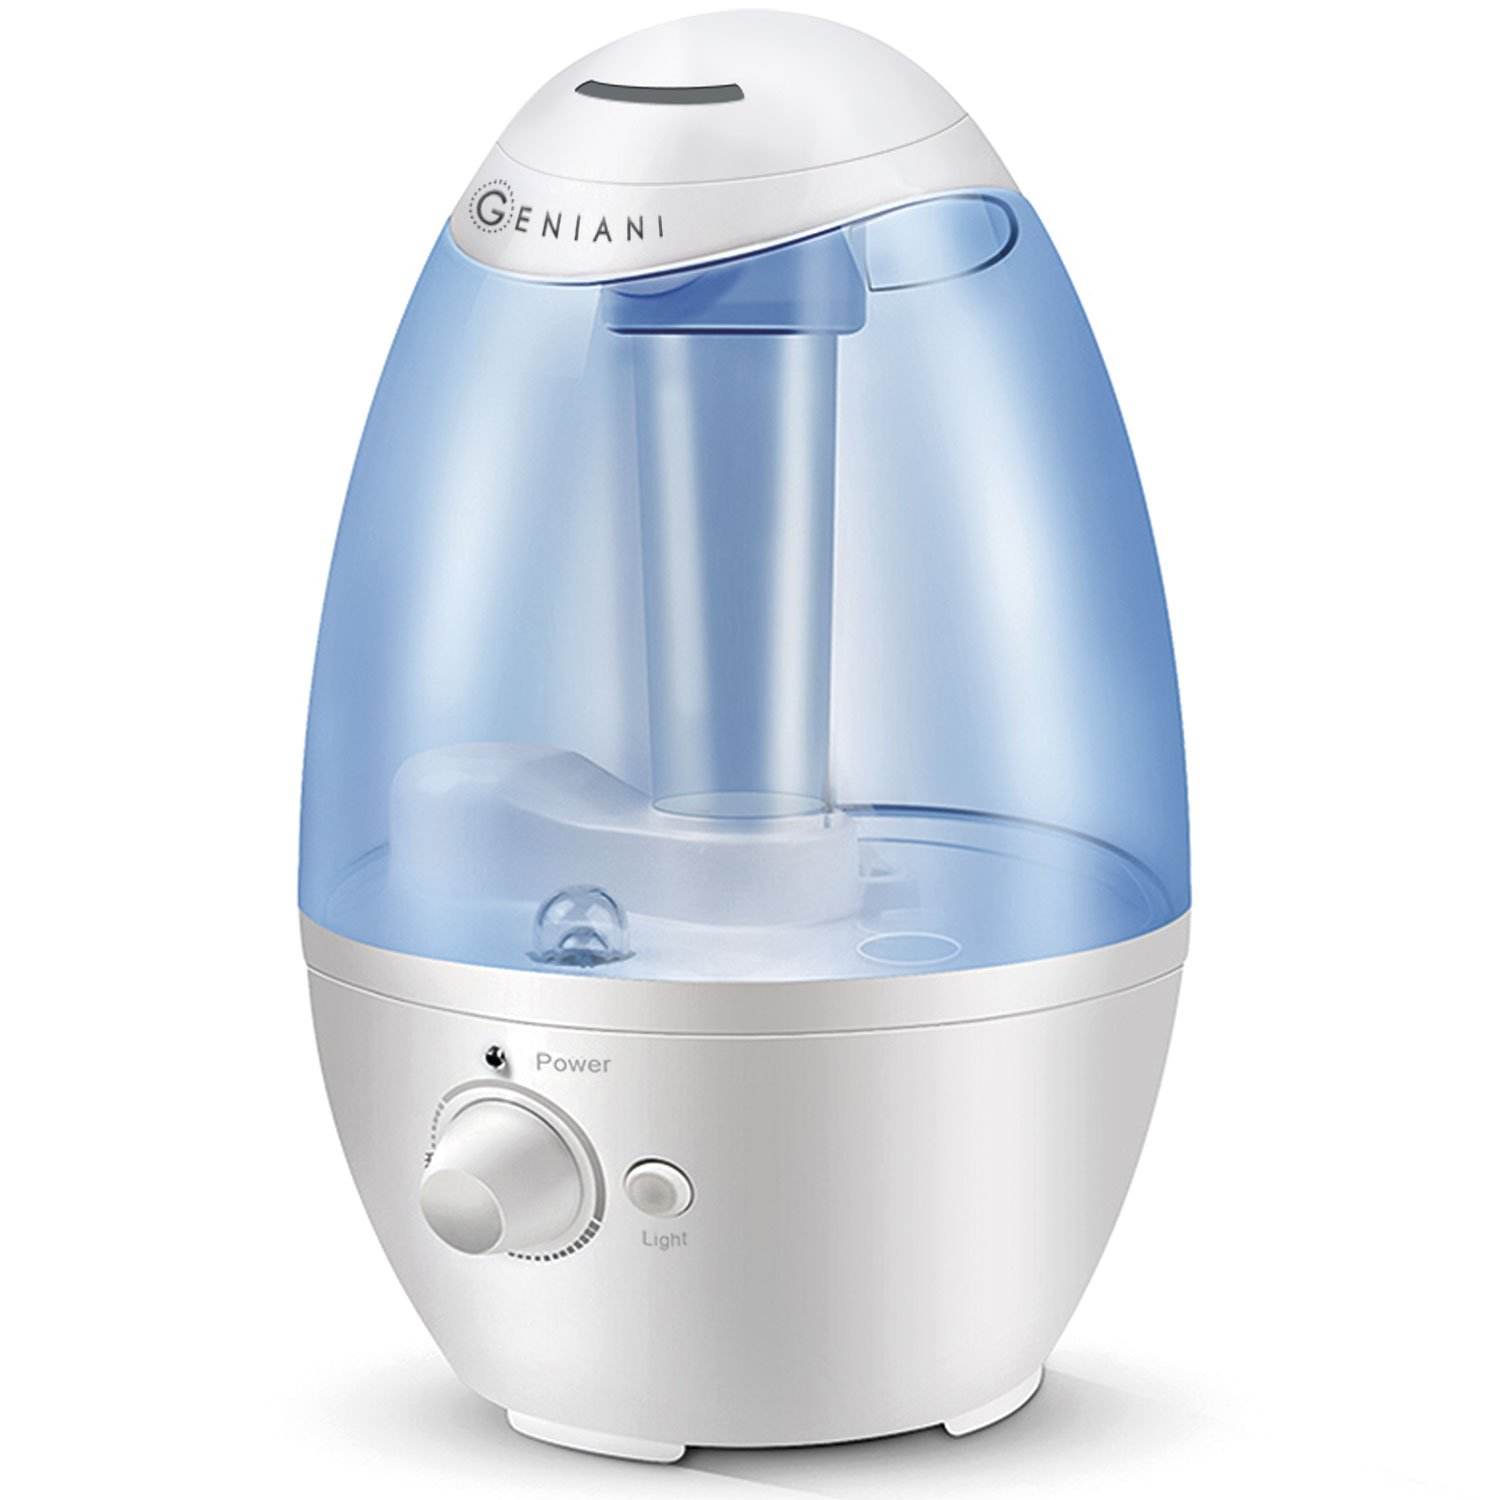 Ultrasonic Cool Mist Humidifier - Best Air Humidifiers for Bedroom / Living Room / Baby with Night Light - Whole House Solution - Large 3L Water Tank - Auto Shut Off & Filter-Free - Gift Box